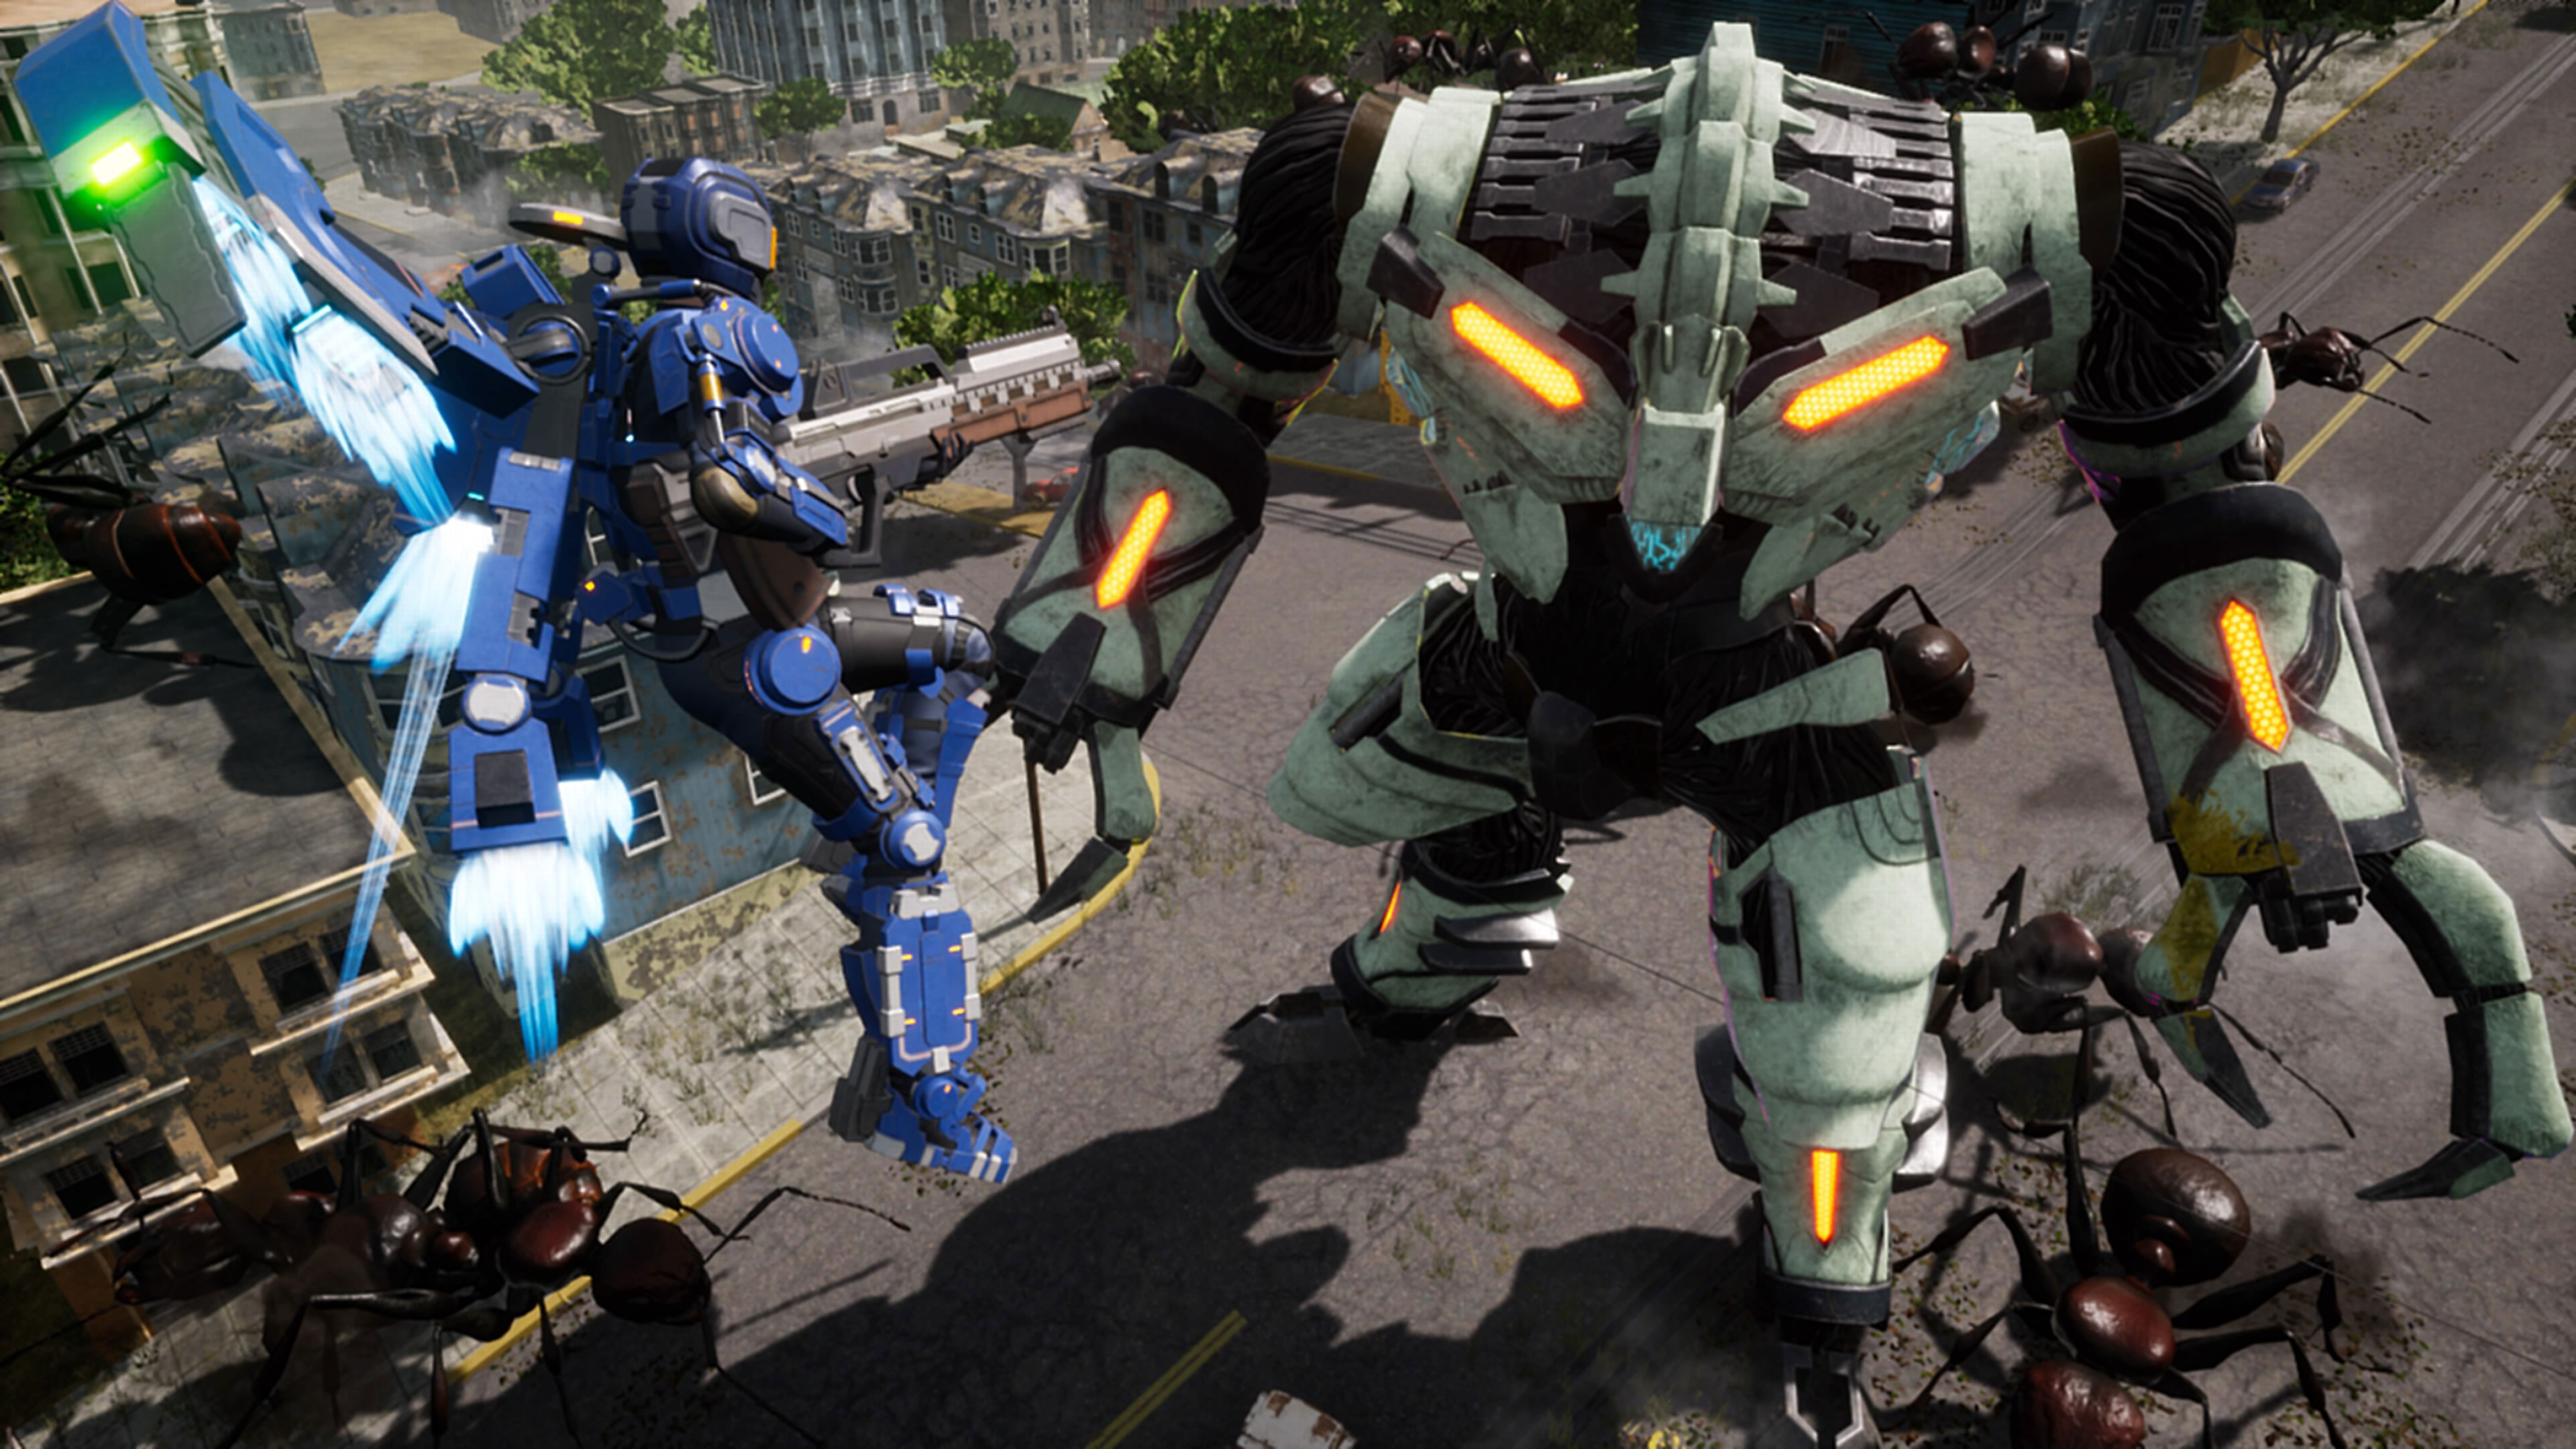 Player flying with high tech suit fighting a giant robot